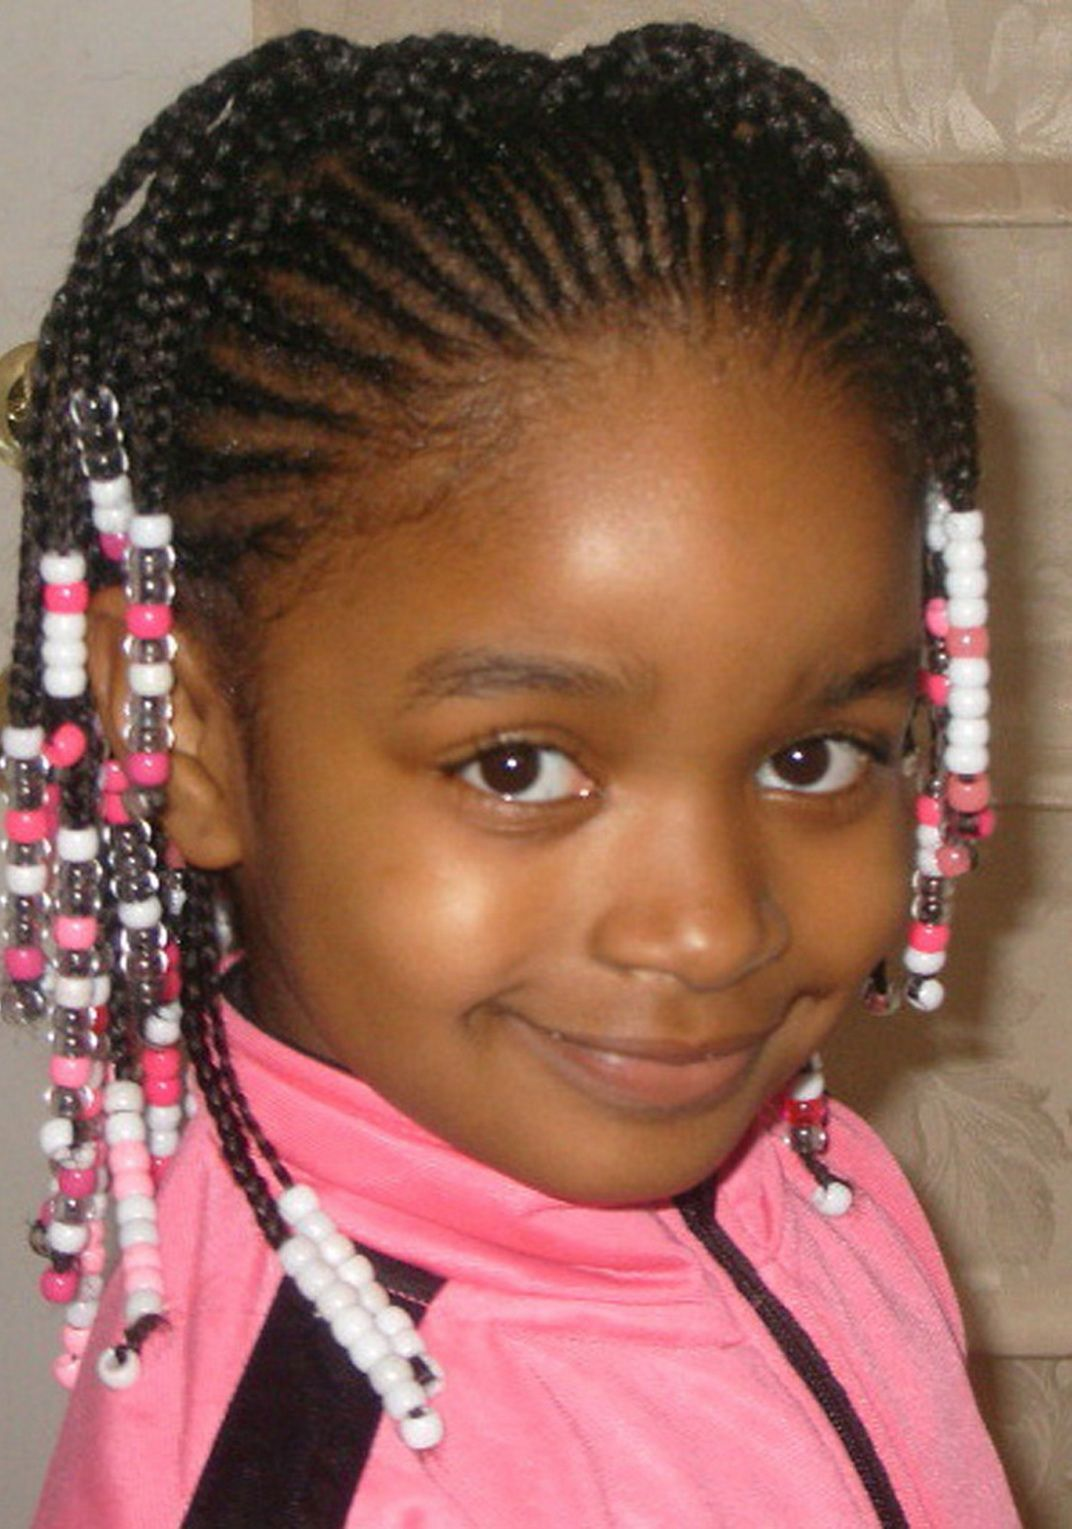 images of ethnic hair kids braided short hairstyles - google